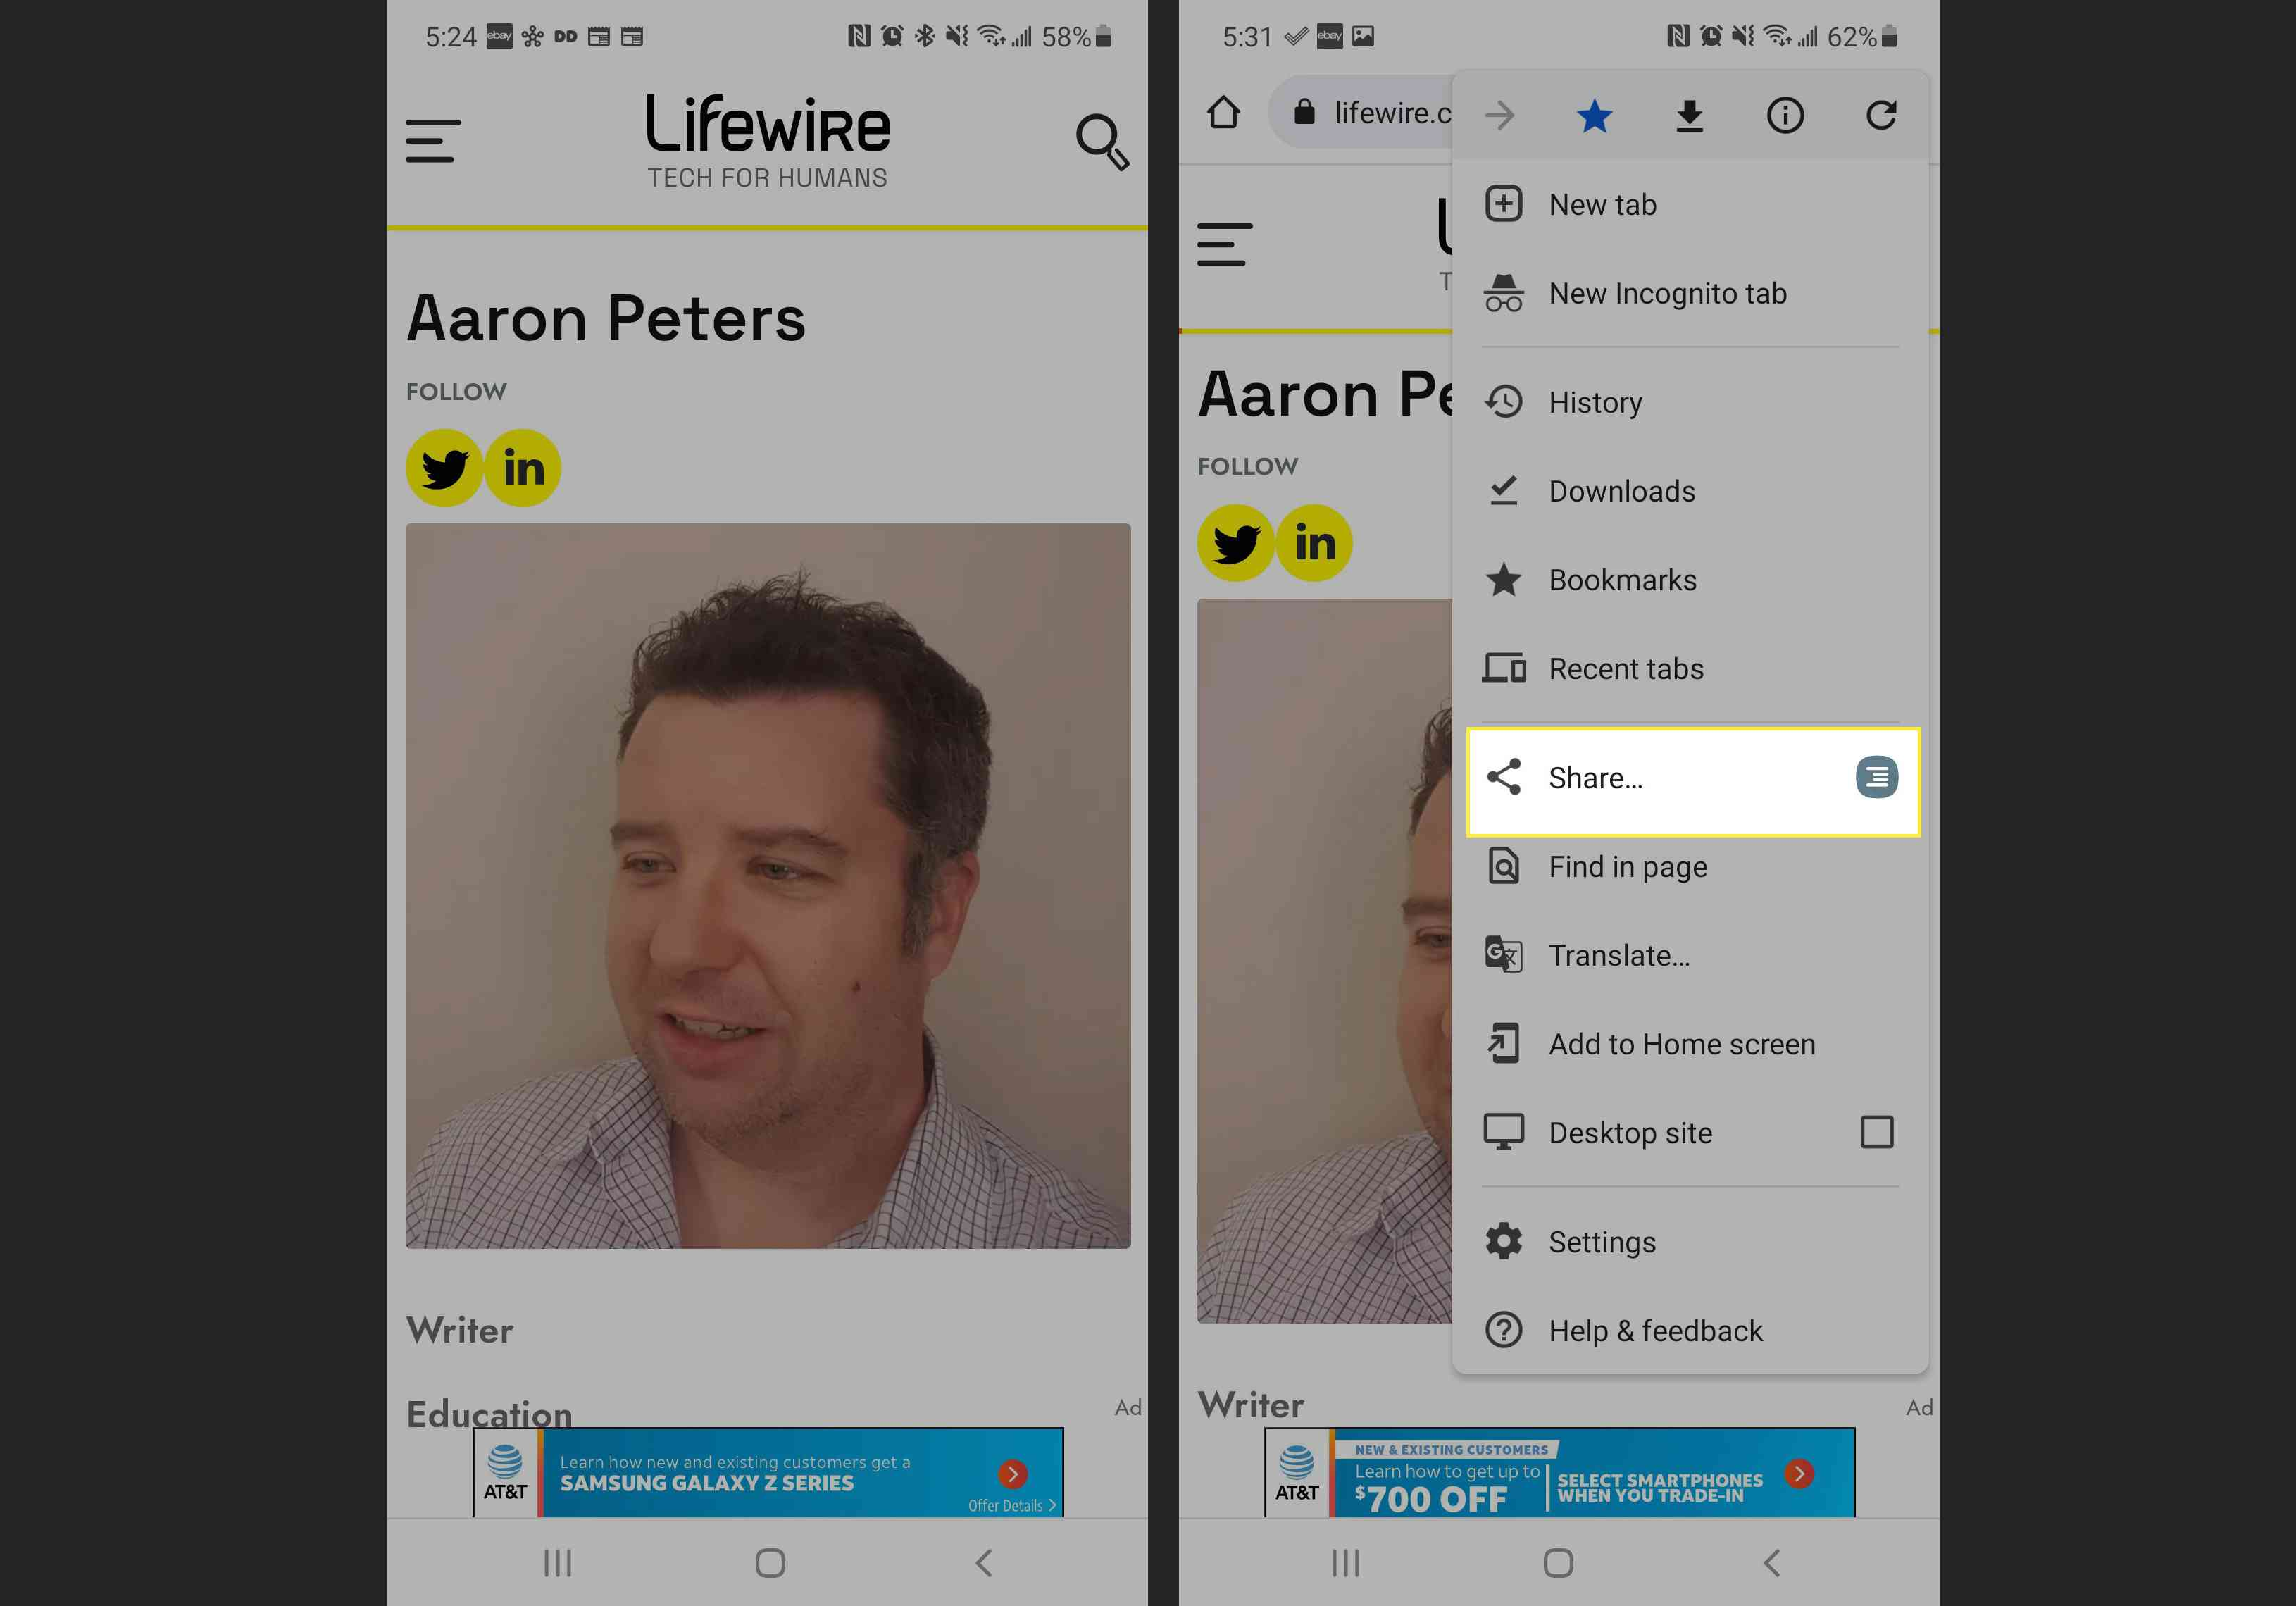 Lifewire Contributor Bio on a Mobile Phone and Android share option highlighted